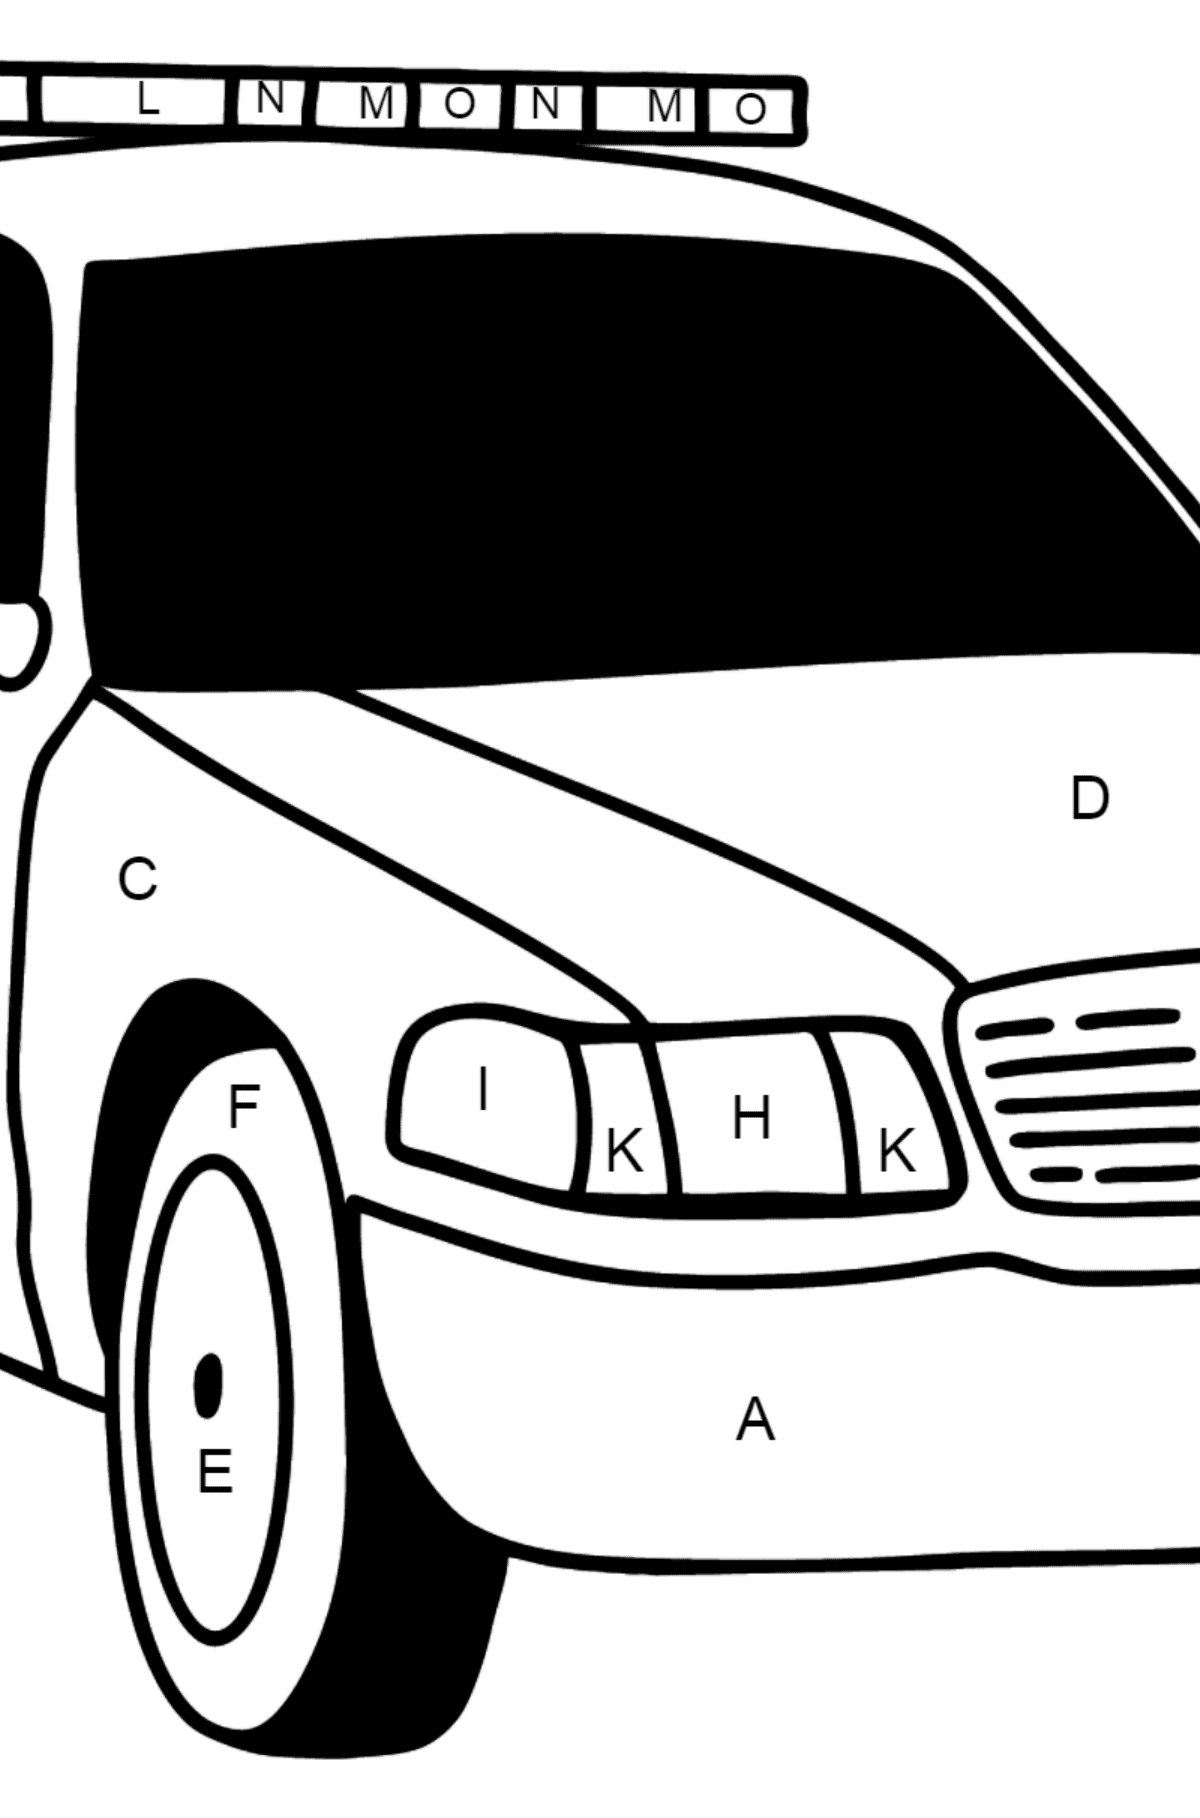 US Police Car coloring page - Coloring by Letters for Kids